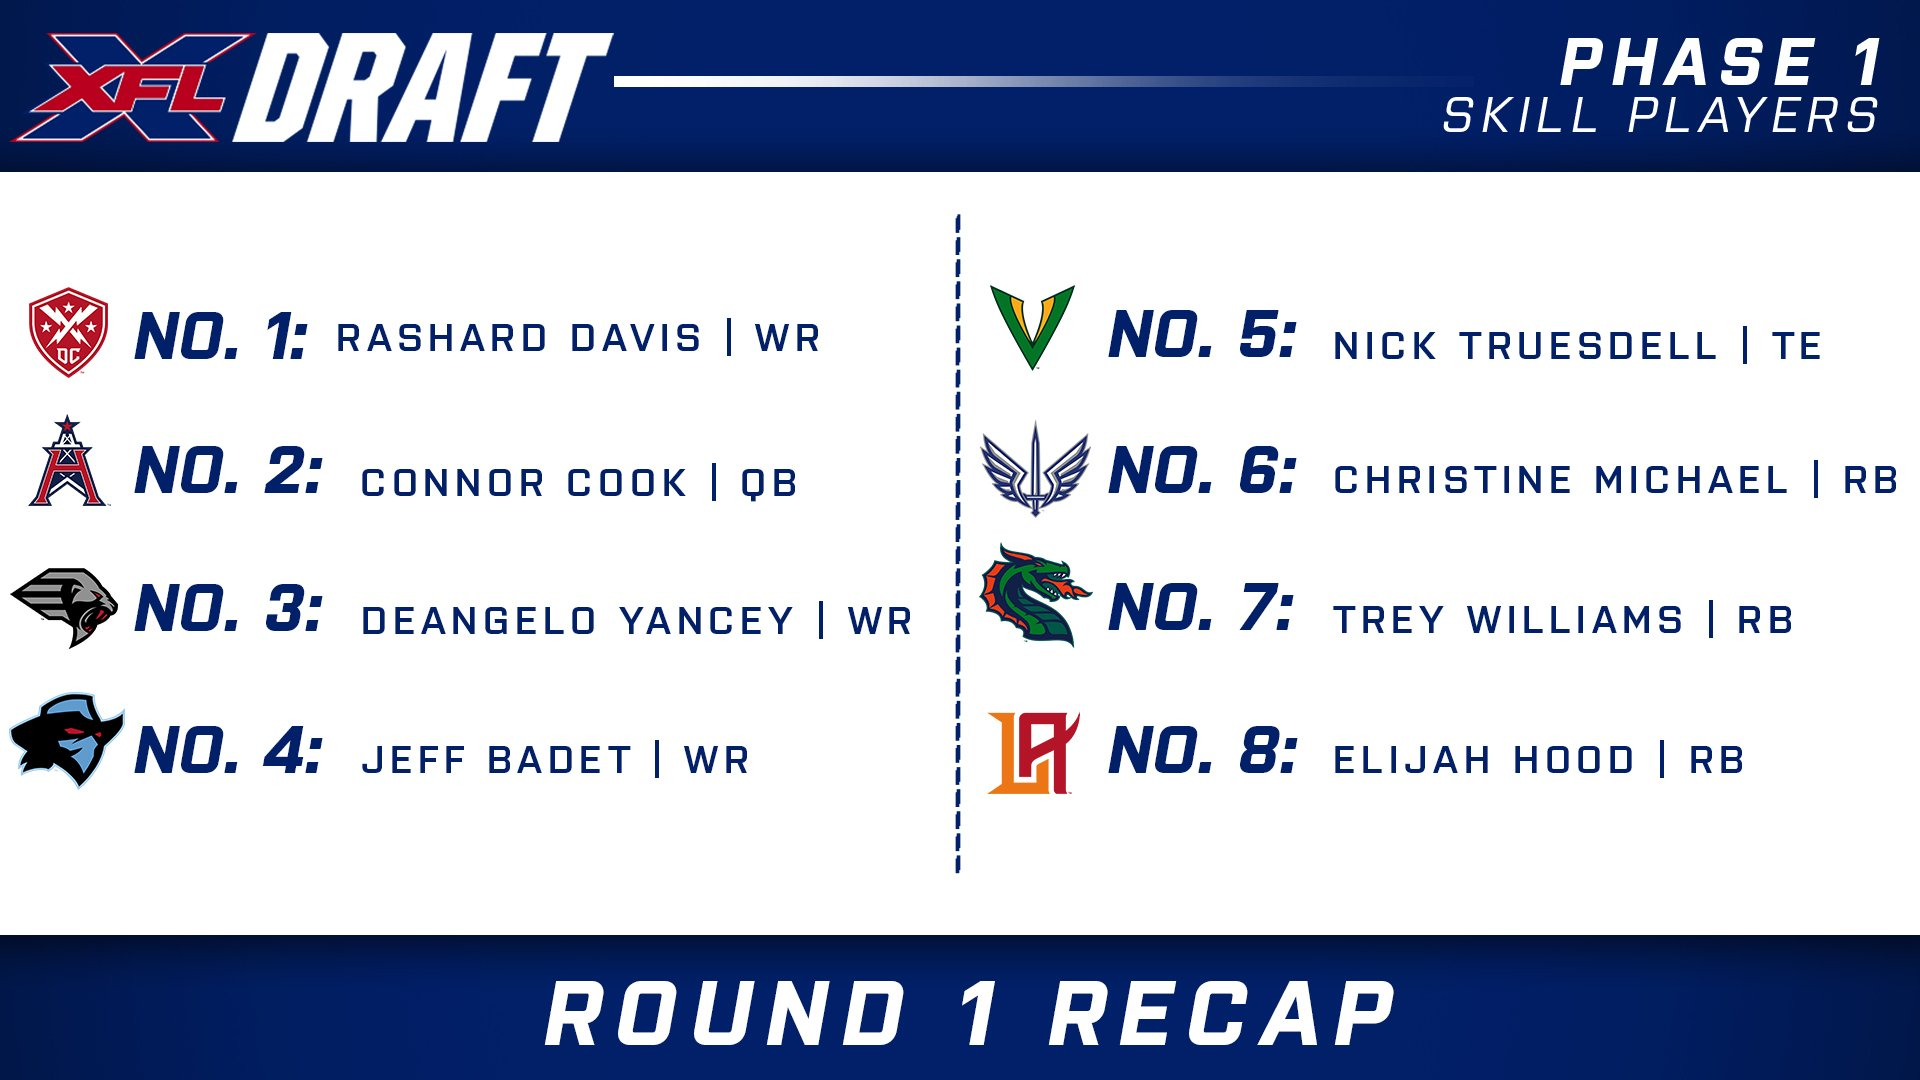 XFL Draft Phase 1 Standouts, Cook. Michael, Coates \u0026 More